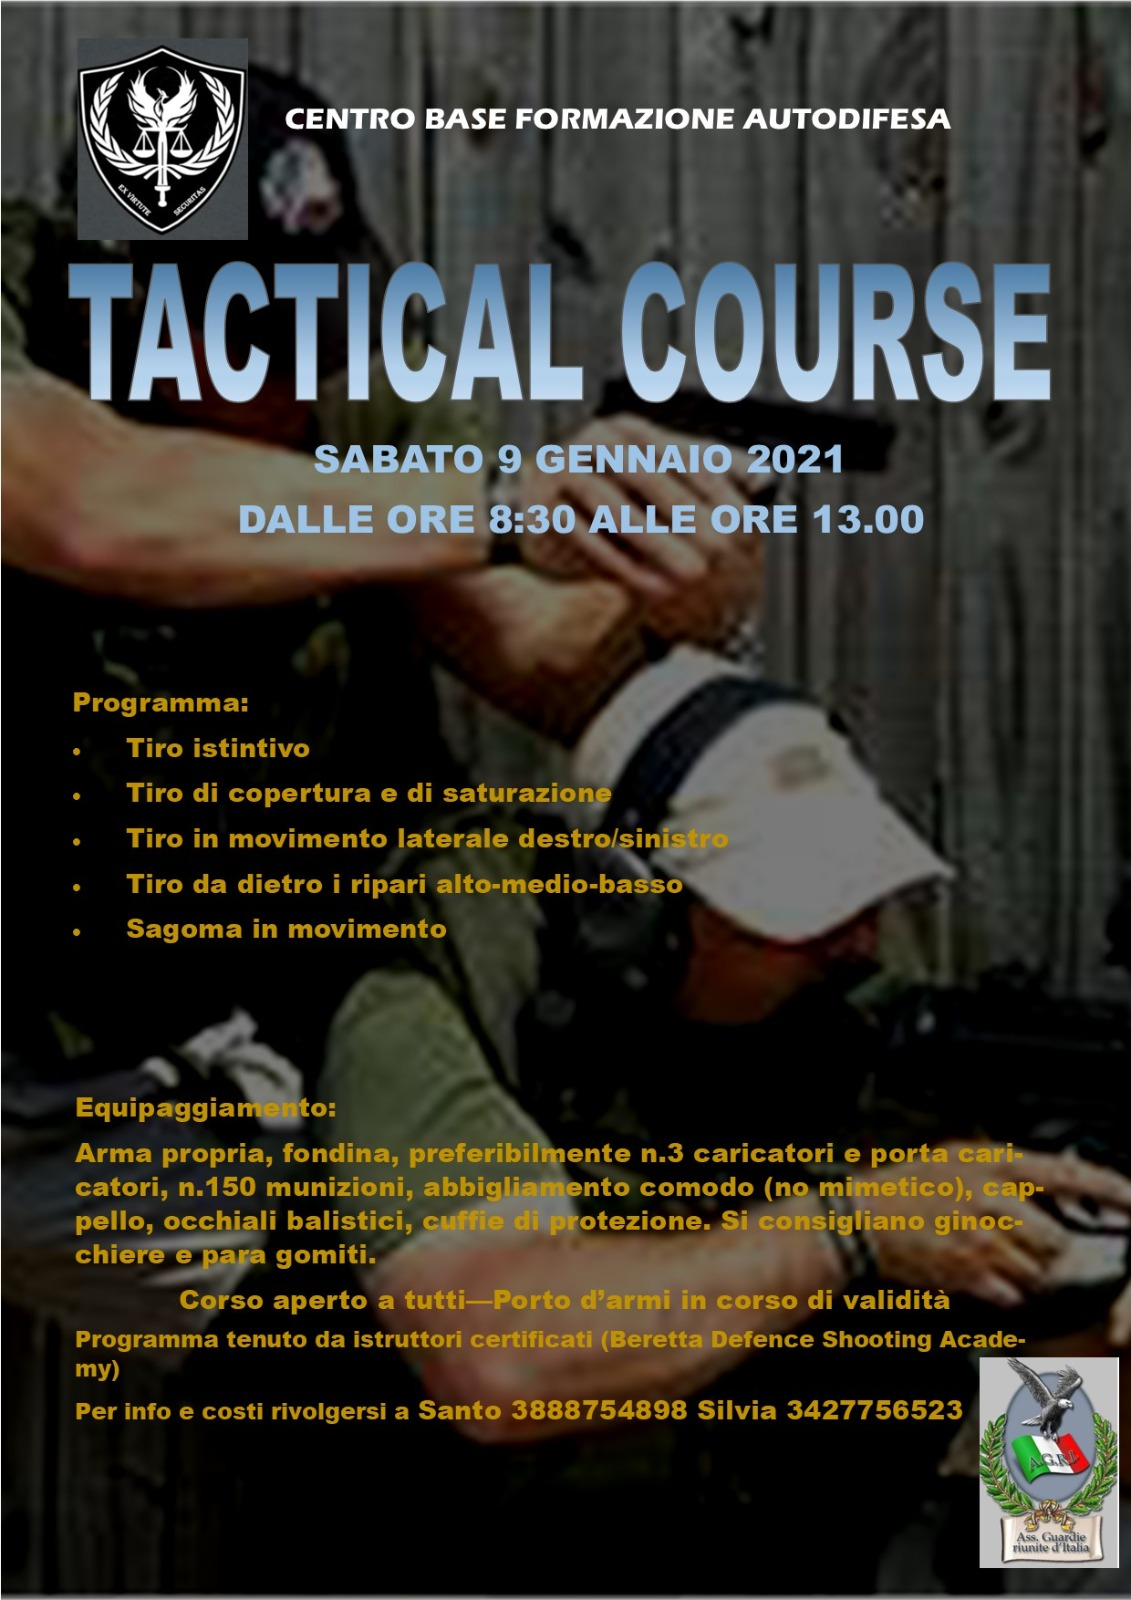 090121Tactical Course